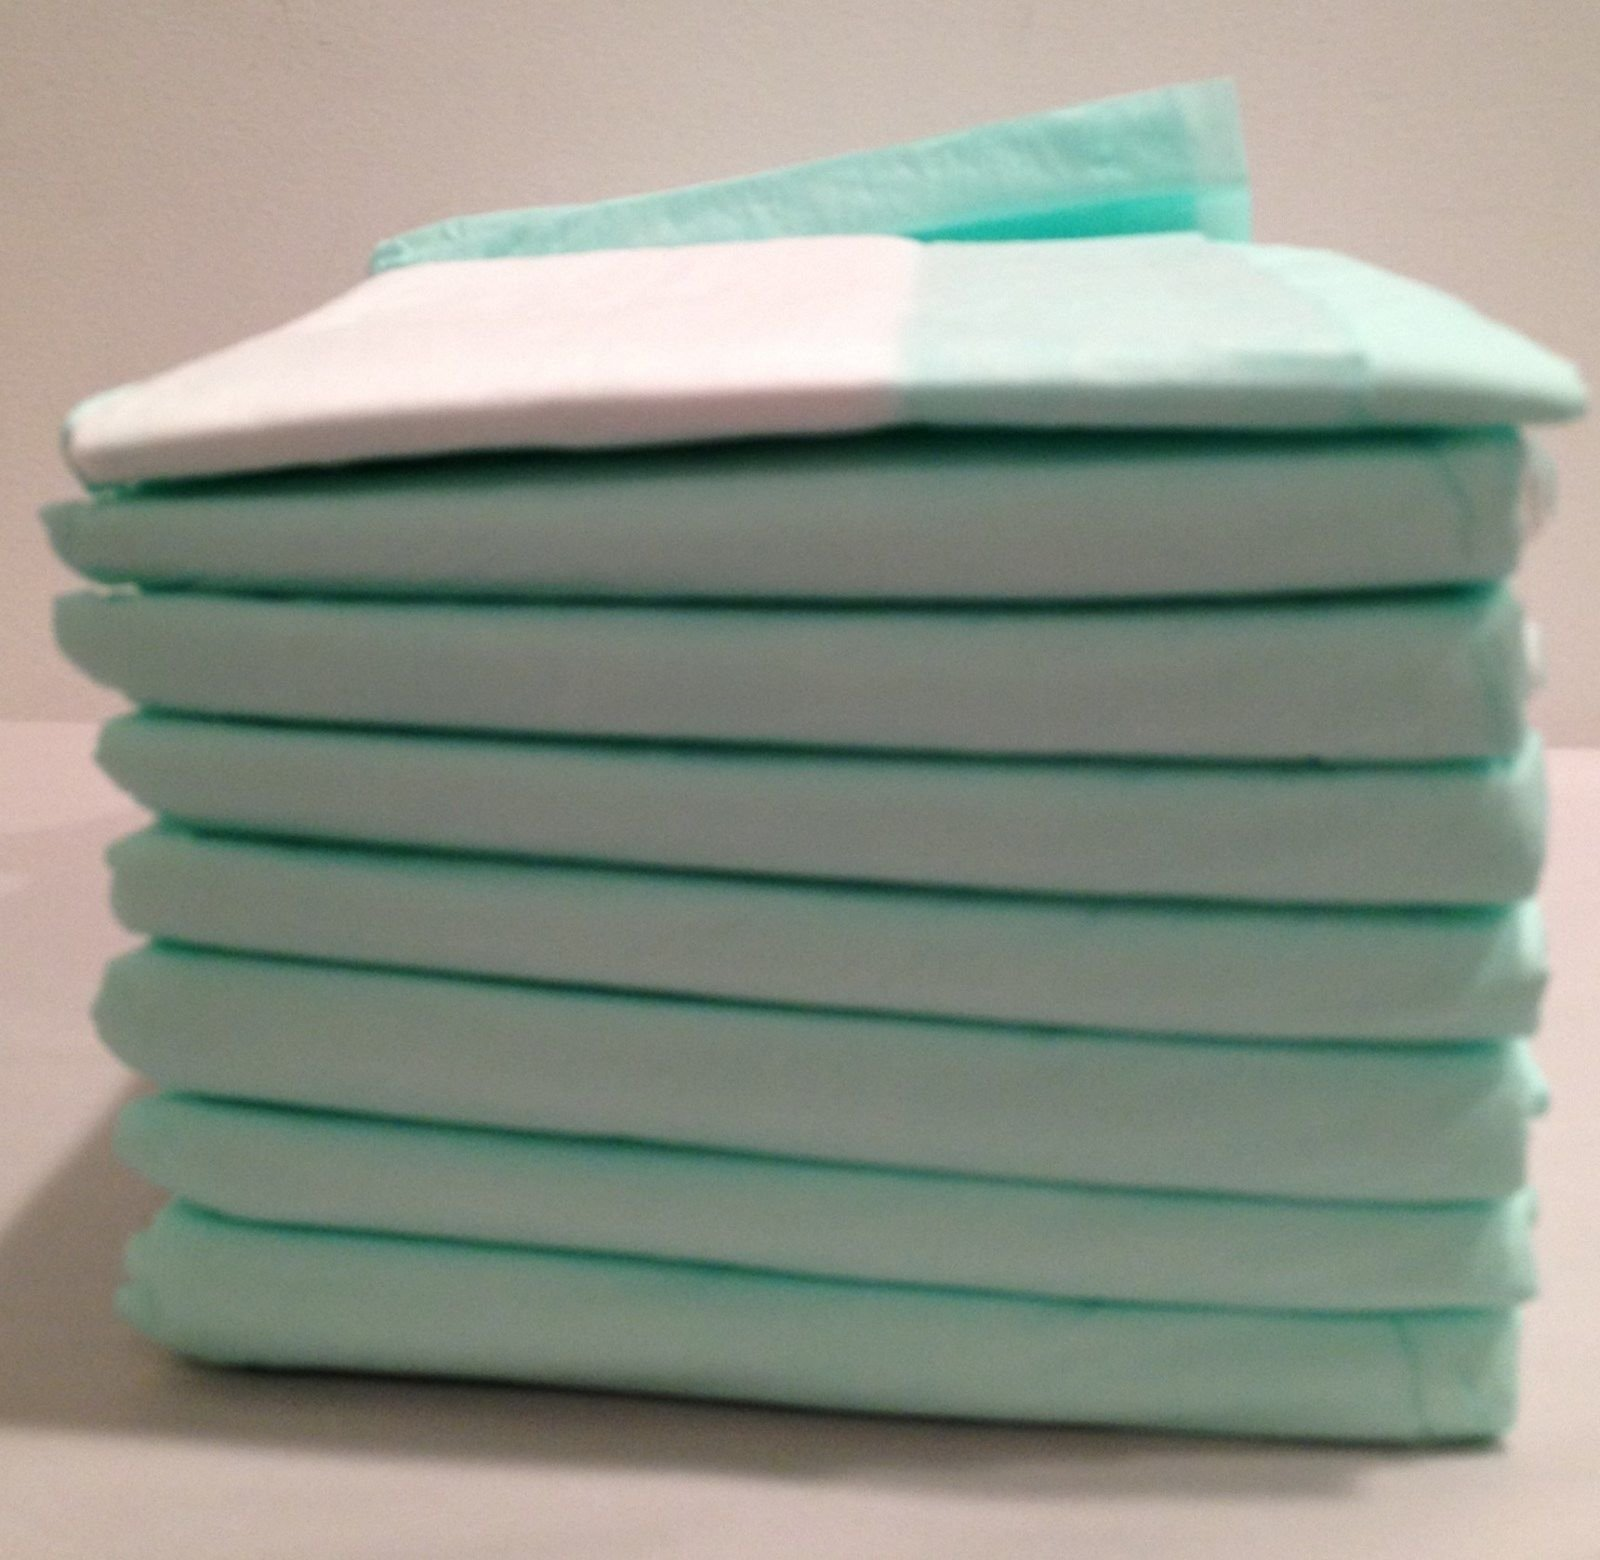 300 PCS- 30x36 Dog Puppy Training Wee Wee Pee Pads Underpads by Tamsun